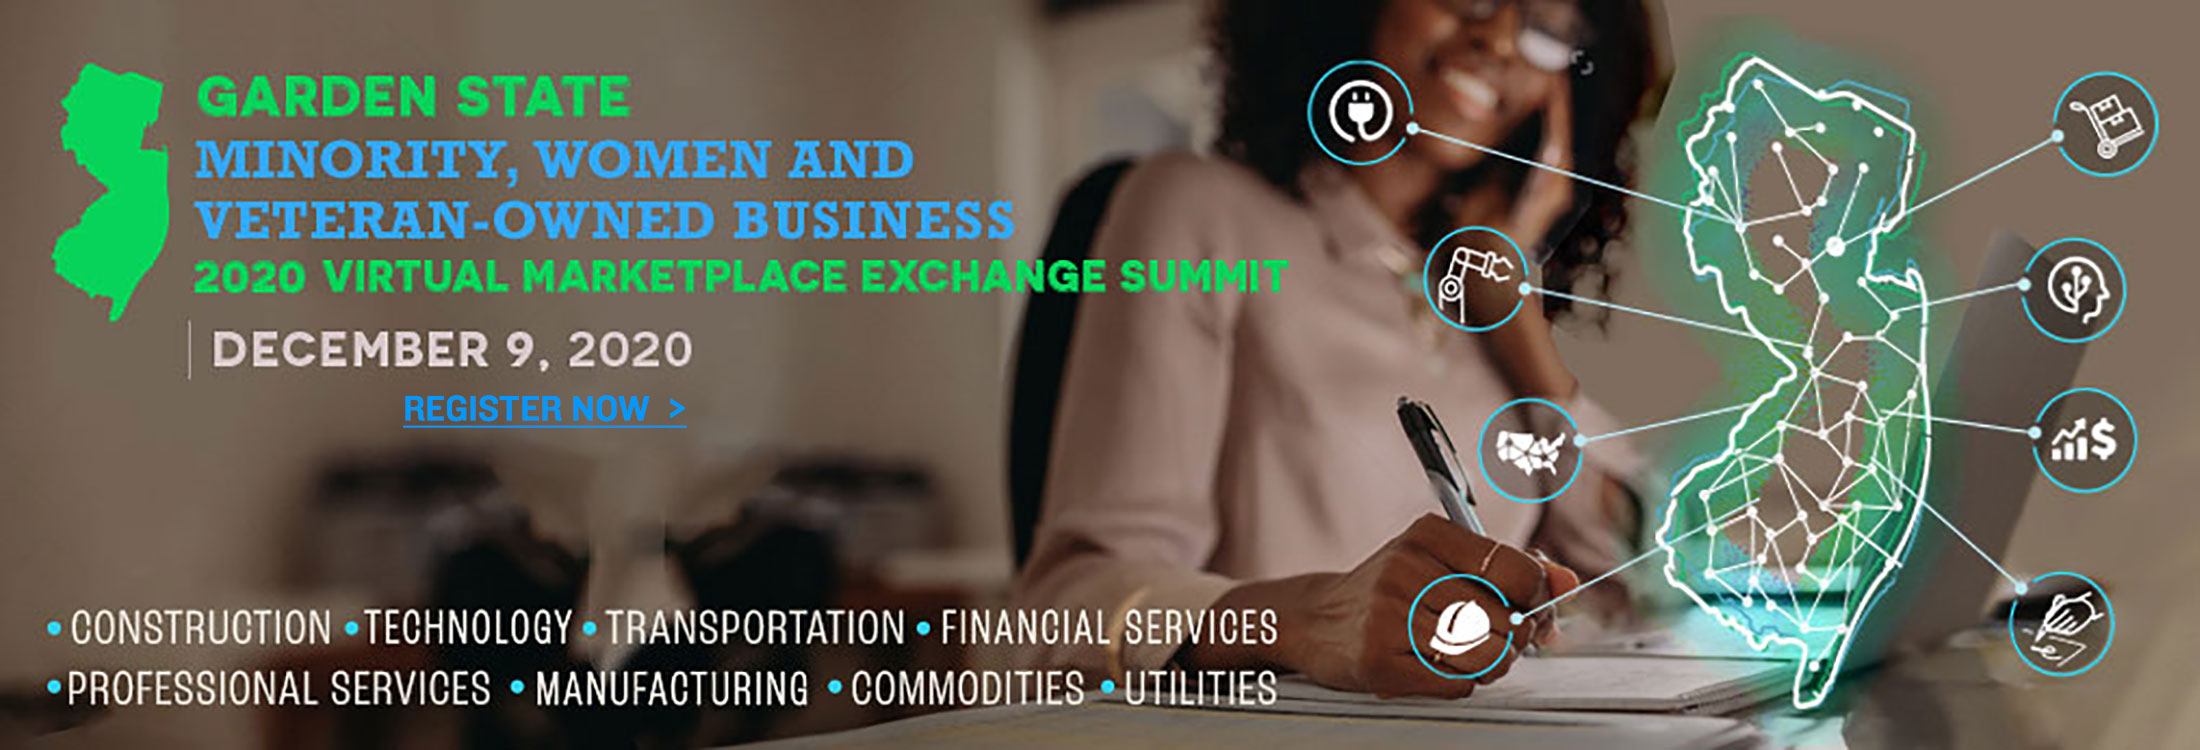 2020 Garden State Marketplace Exchange Virtual Summit on December 9th - Click to Register